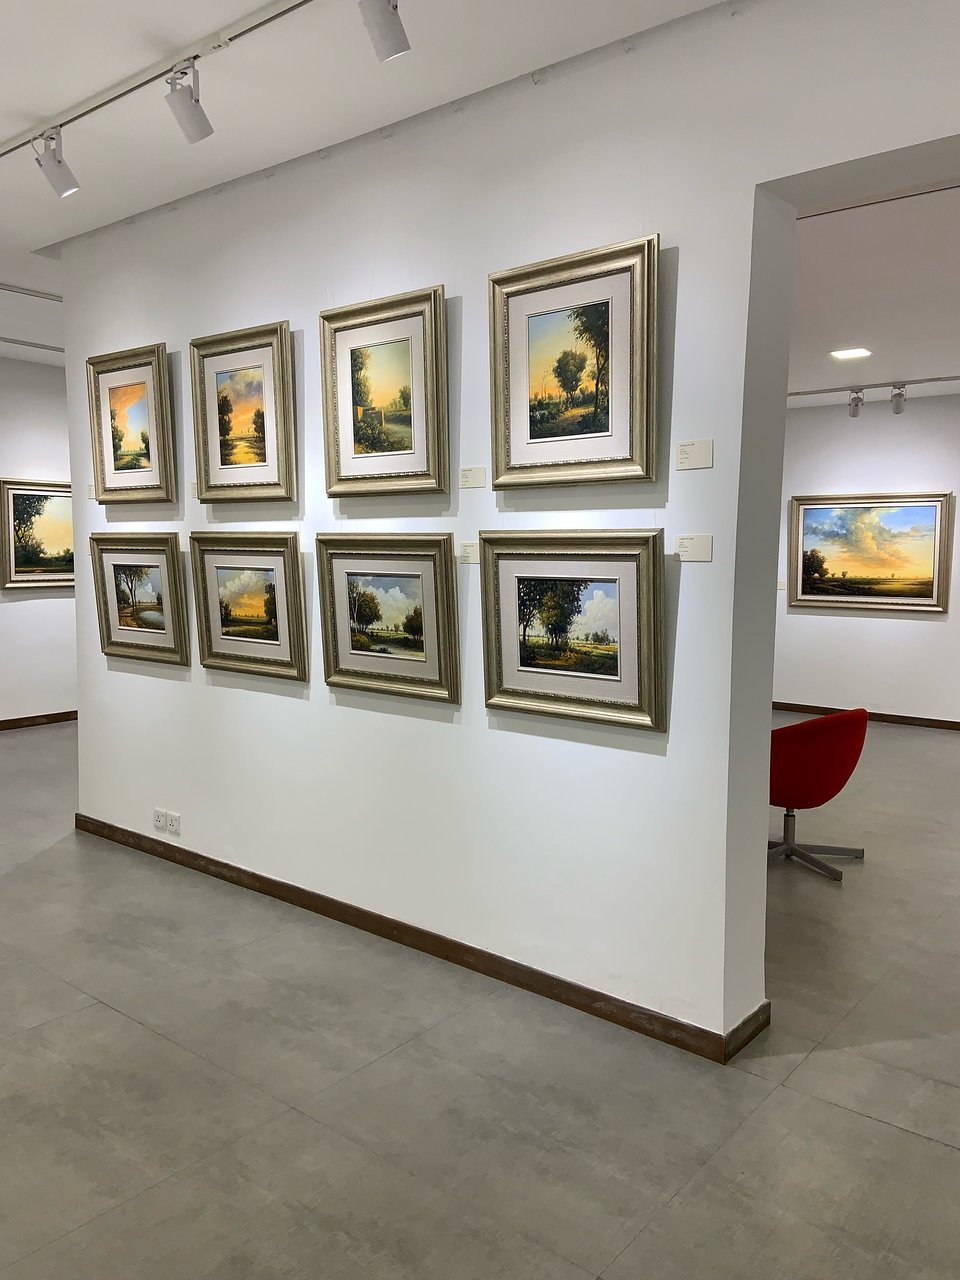 Tanzara Art Gallery (Islamabad) - 2020 All You Need to Know BEFORE You Go  (with Photos) - Tripadvisor